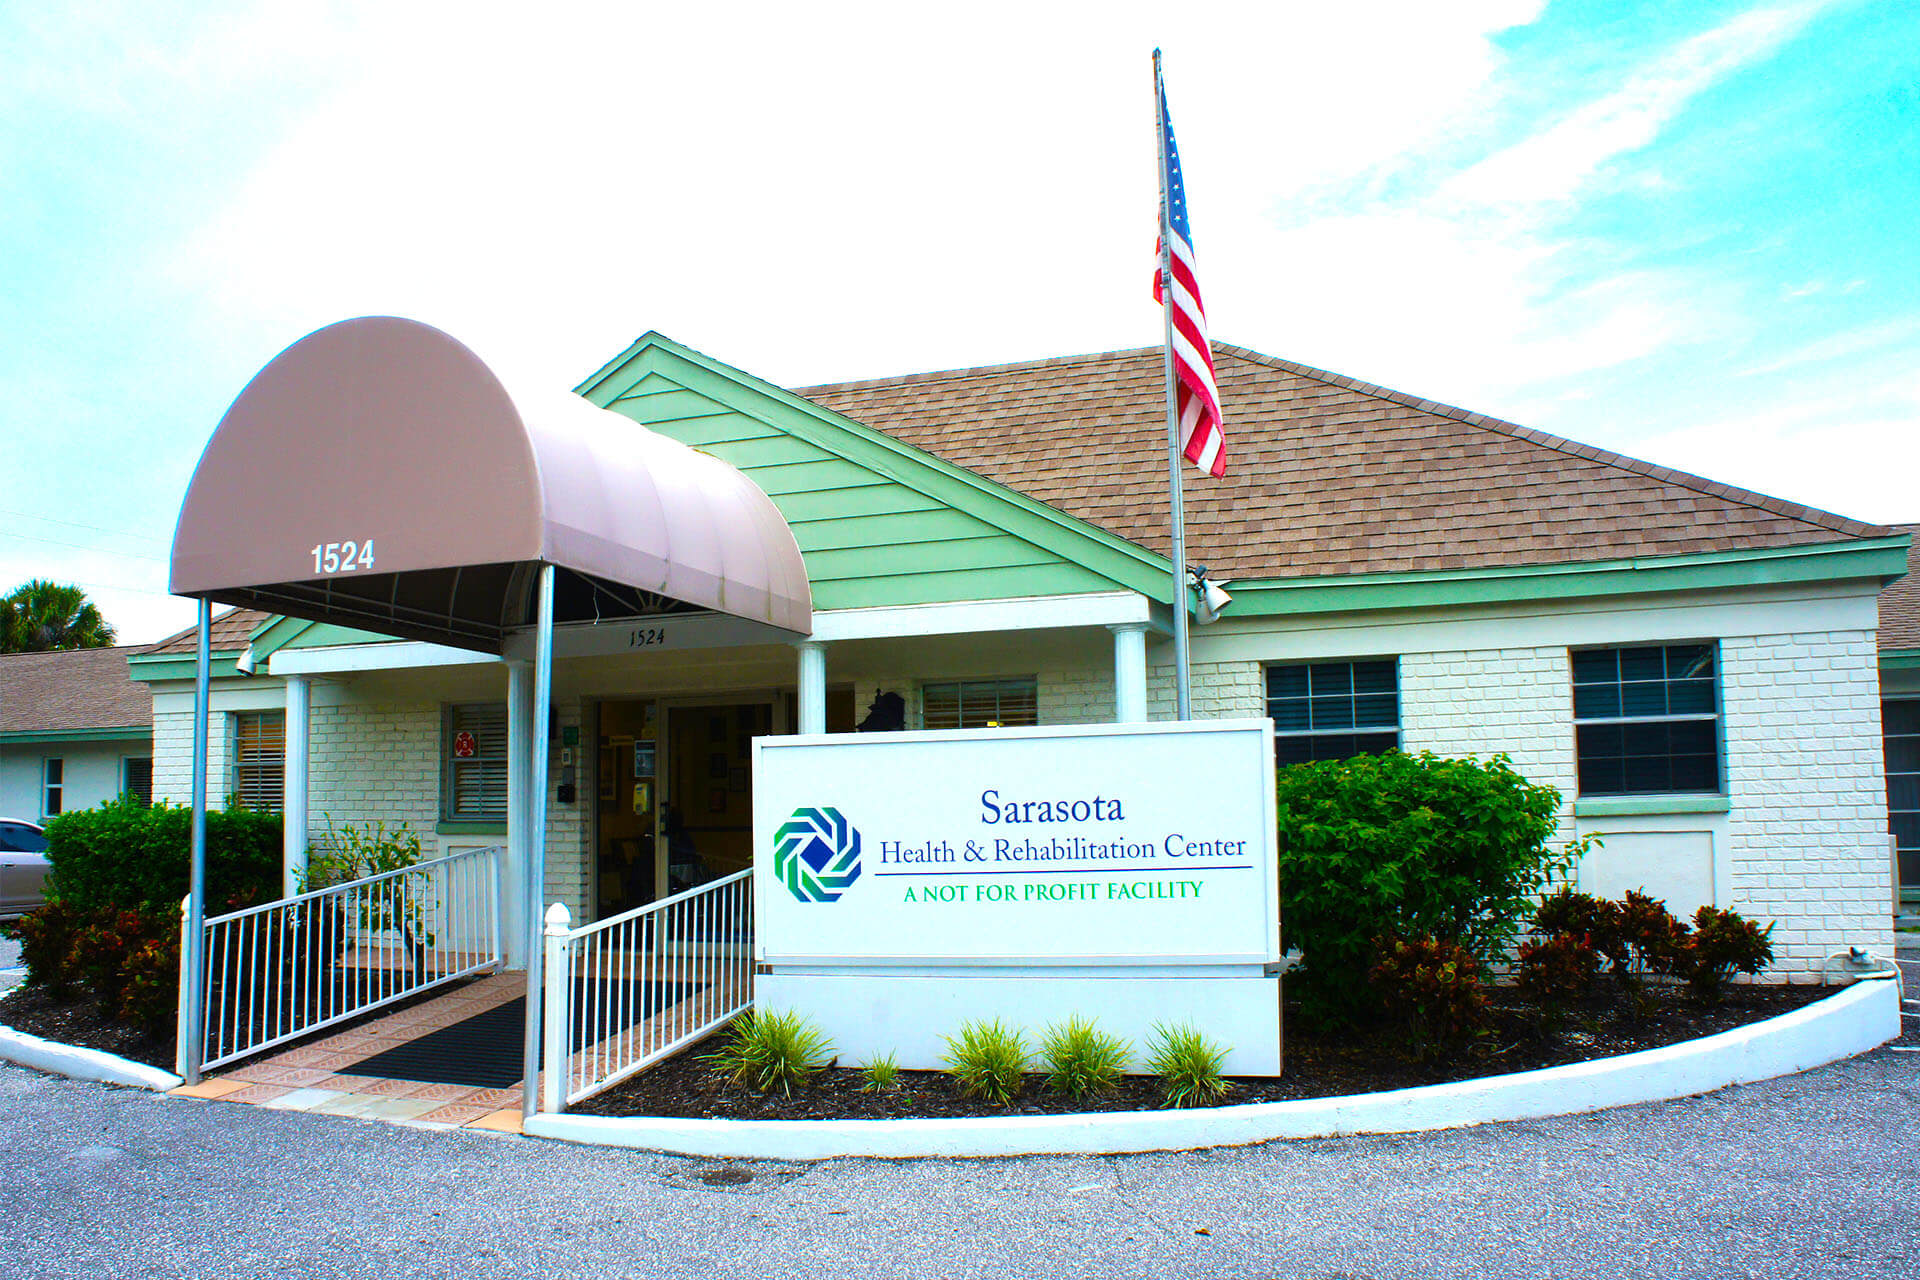 About us – Sarasota Health & Rehabilitation Center